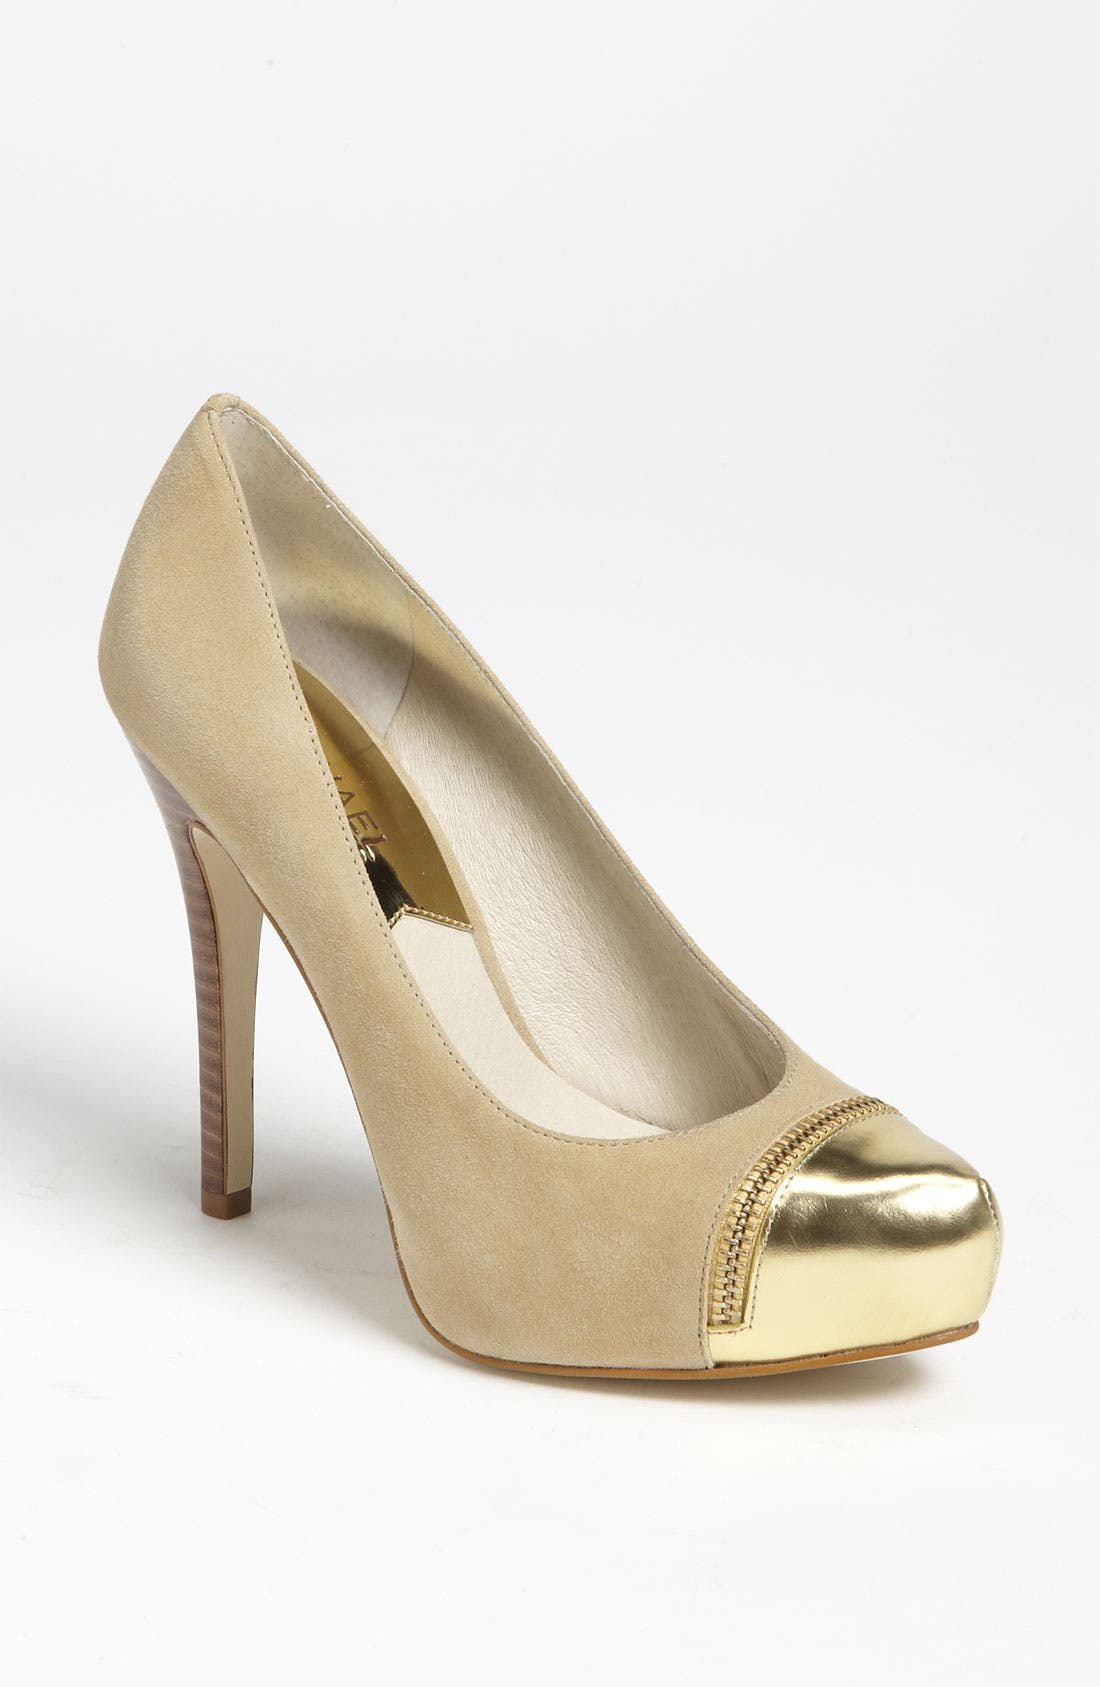 Alternate Image 1 Selected - MICHAEL Michael Kors 'Cynthia' Pump